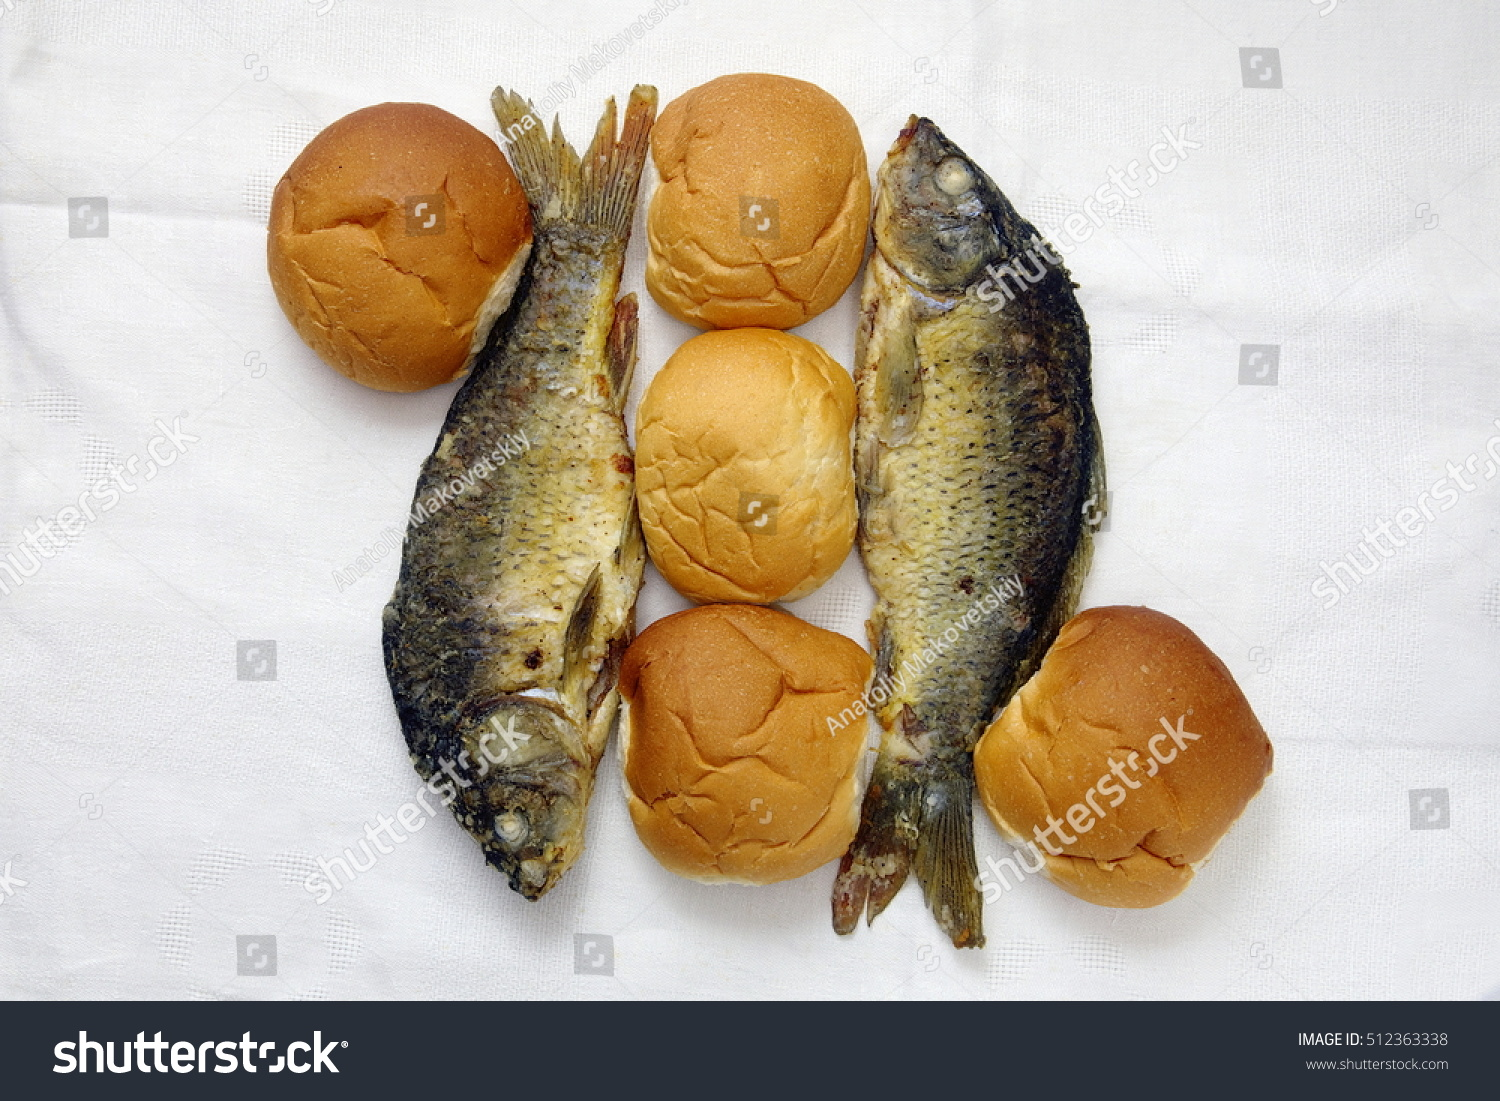 Five loaves two fishes stock photo 512363338 shutterstock for Five loaves two fish